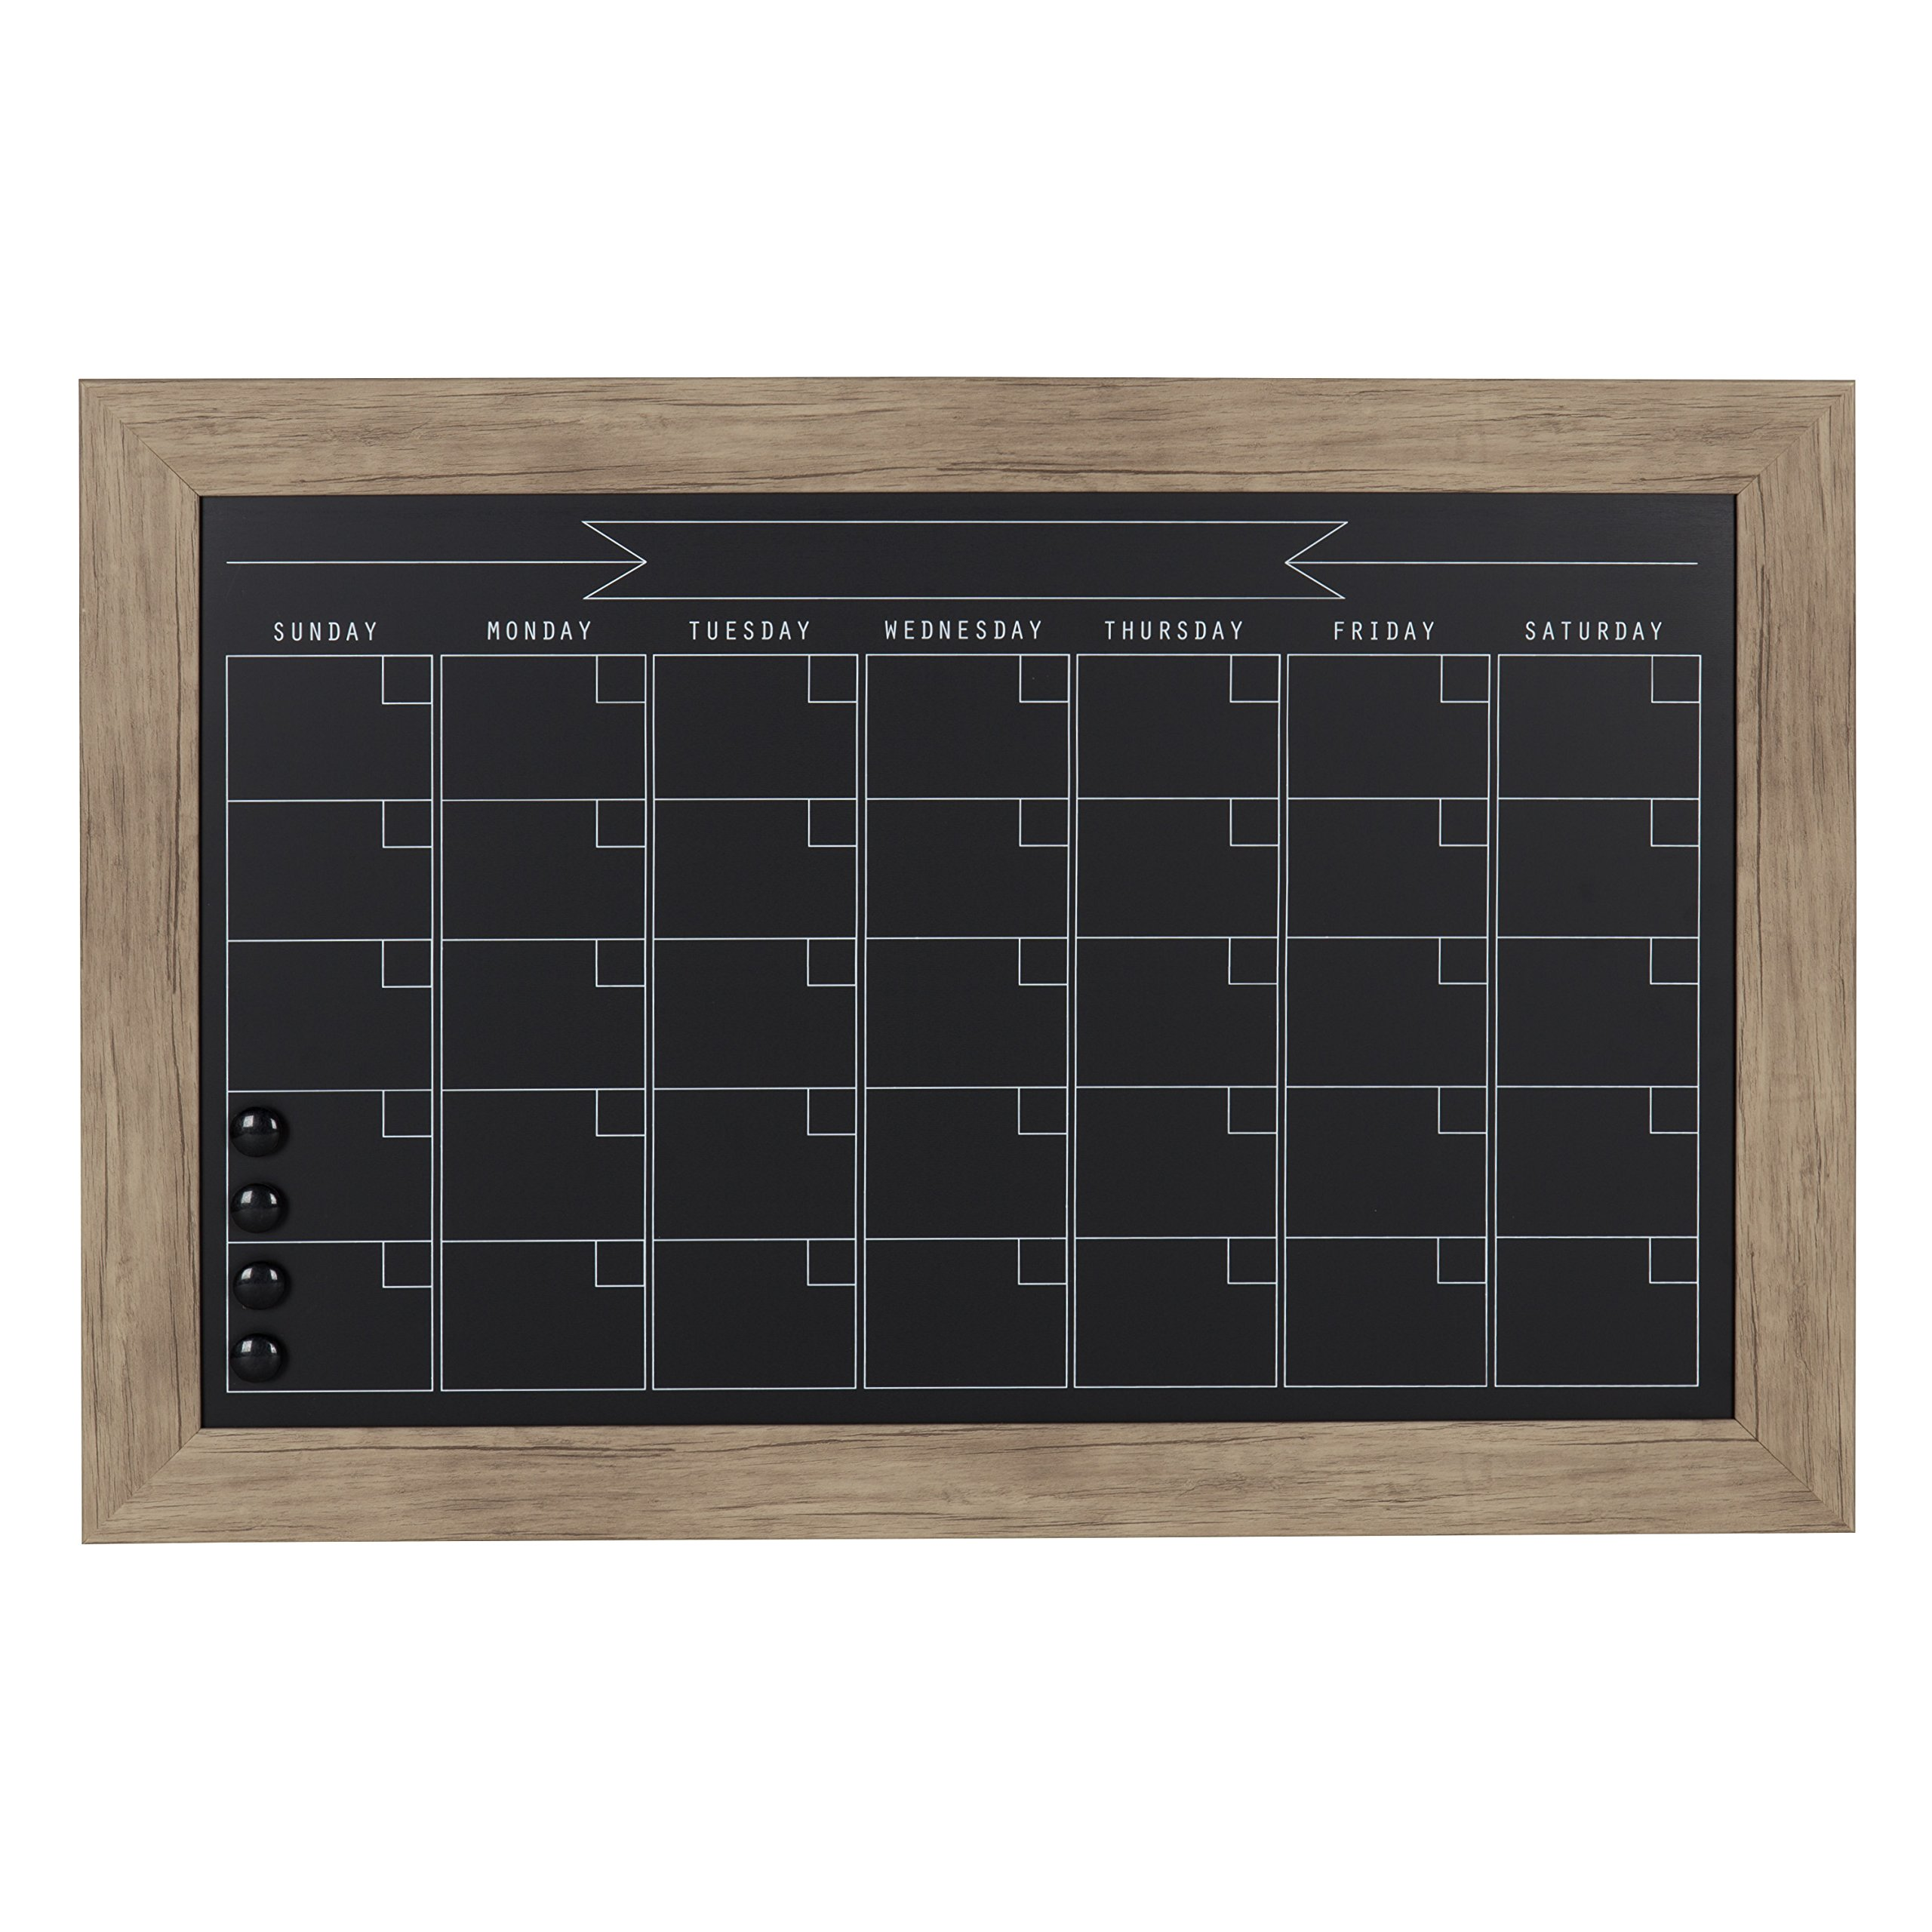 DesignOvation Beatrice Framed Magnetic Chalkboard Monthly Calendar, 18x27, Rustic Brown